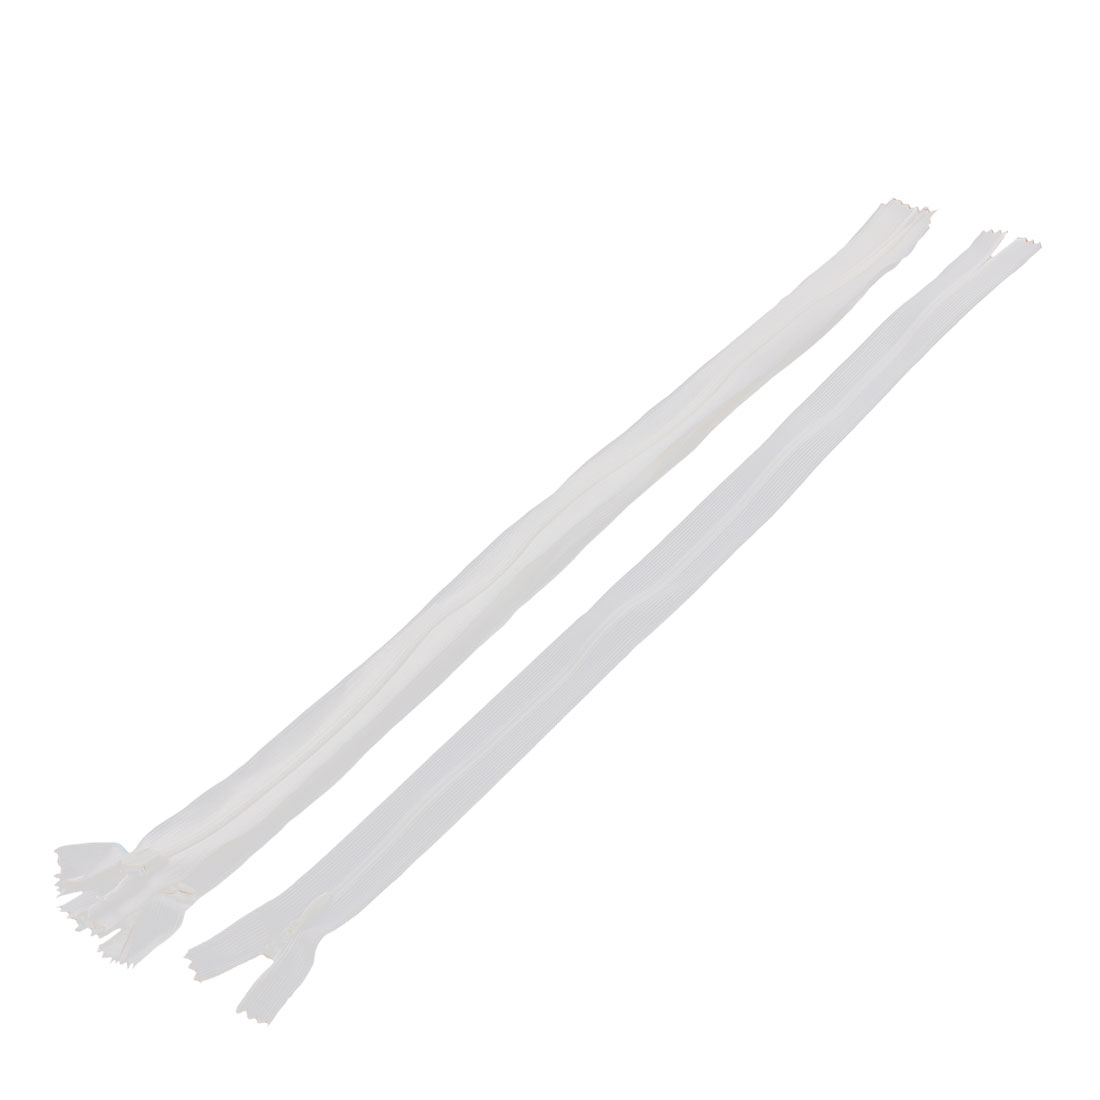 Dress Pants Closed End Nylon Zippers Tailor Sewing Craft Tool White 40cm 5 Pcs